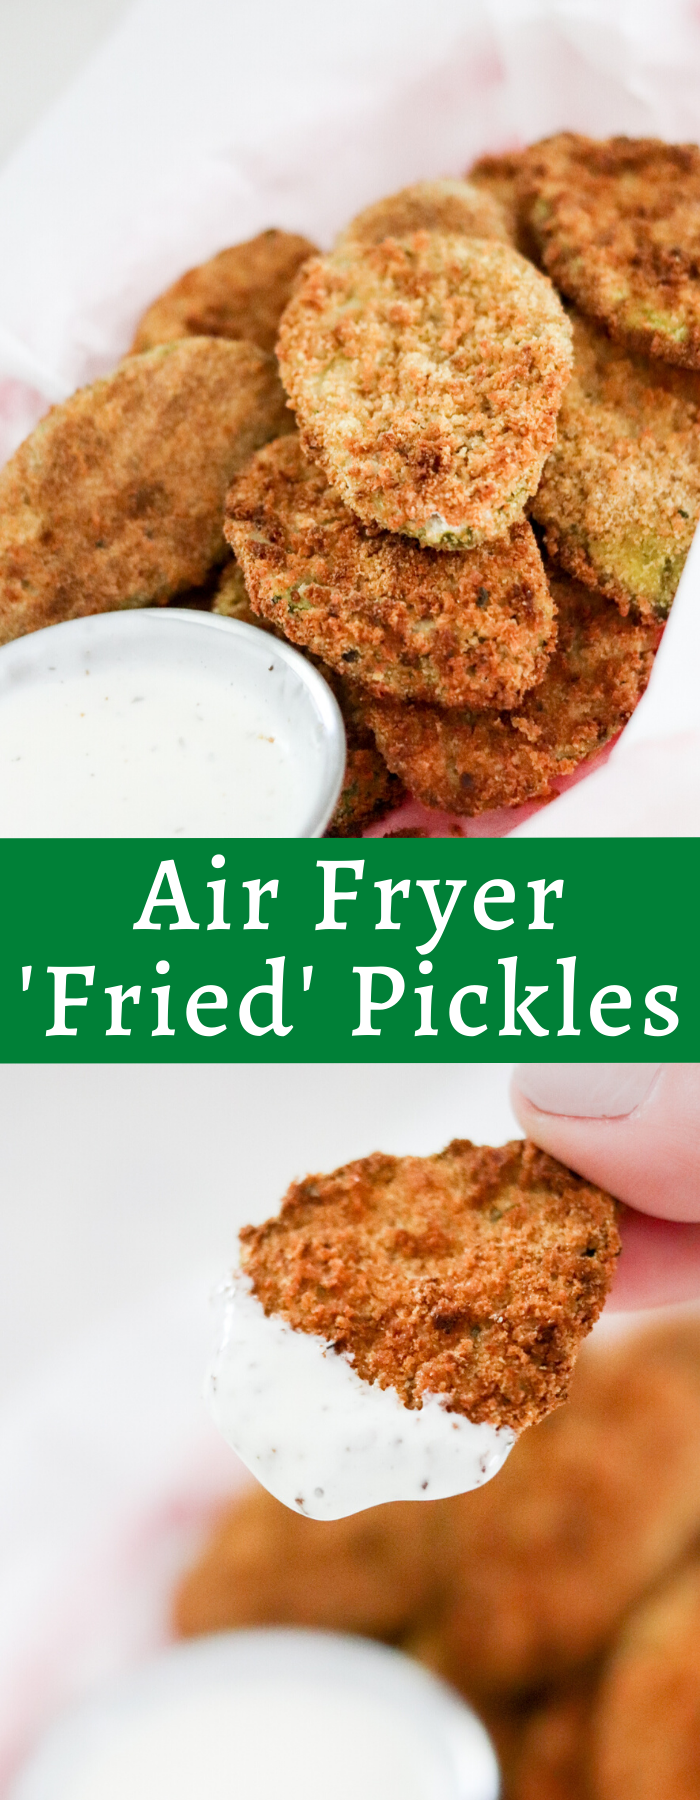 Making Fried Pickles in the Air fryer takes hardly any time and uses no oil like deep frying! Feel good about eating these healthier 'fried pickles'!